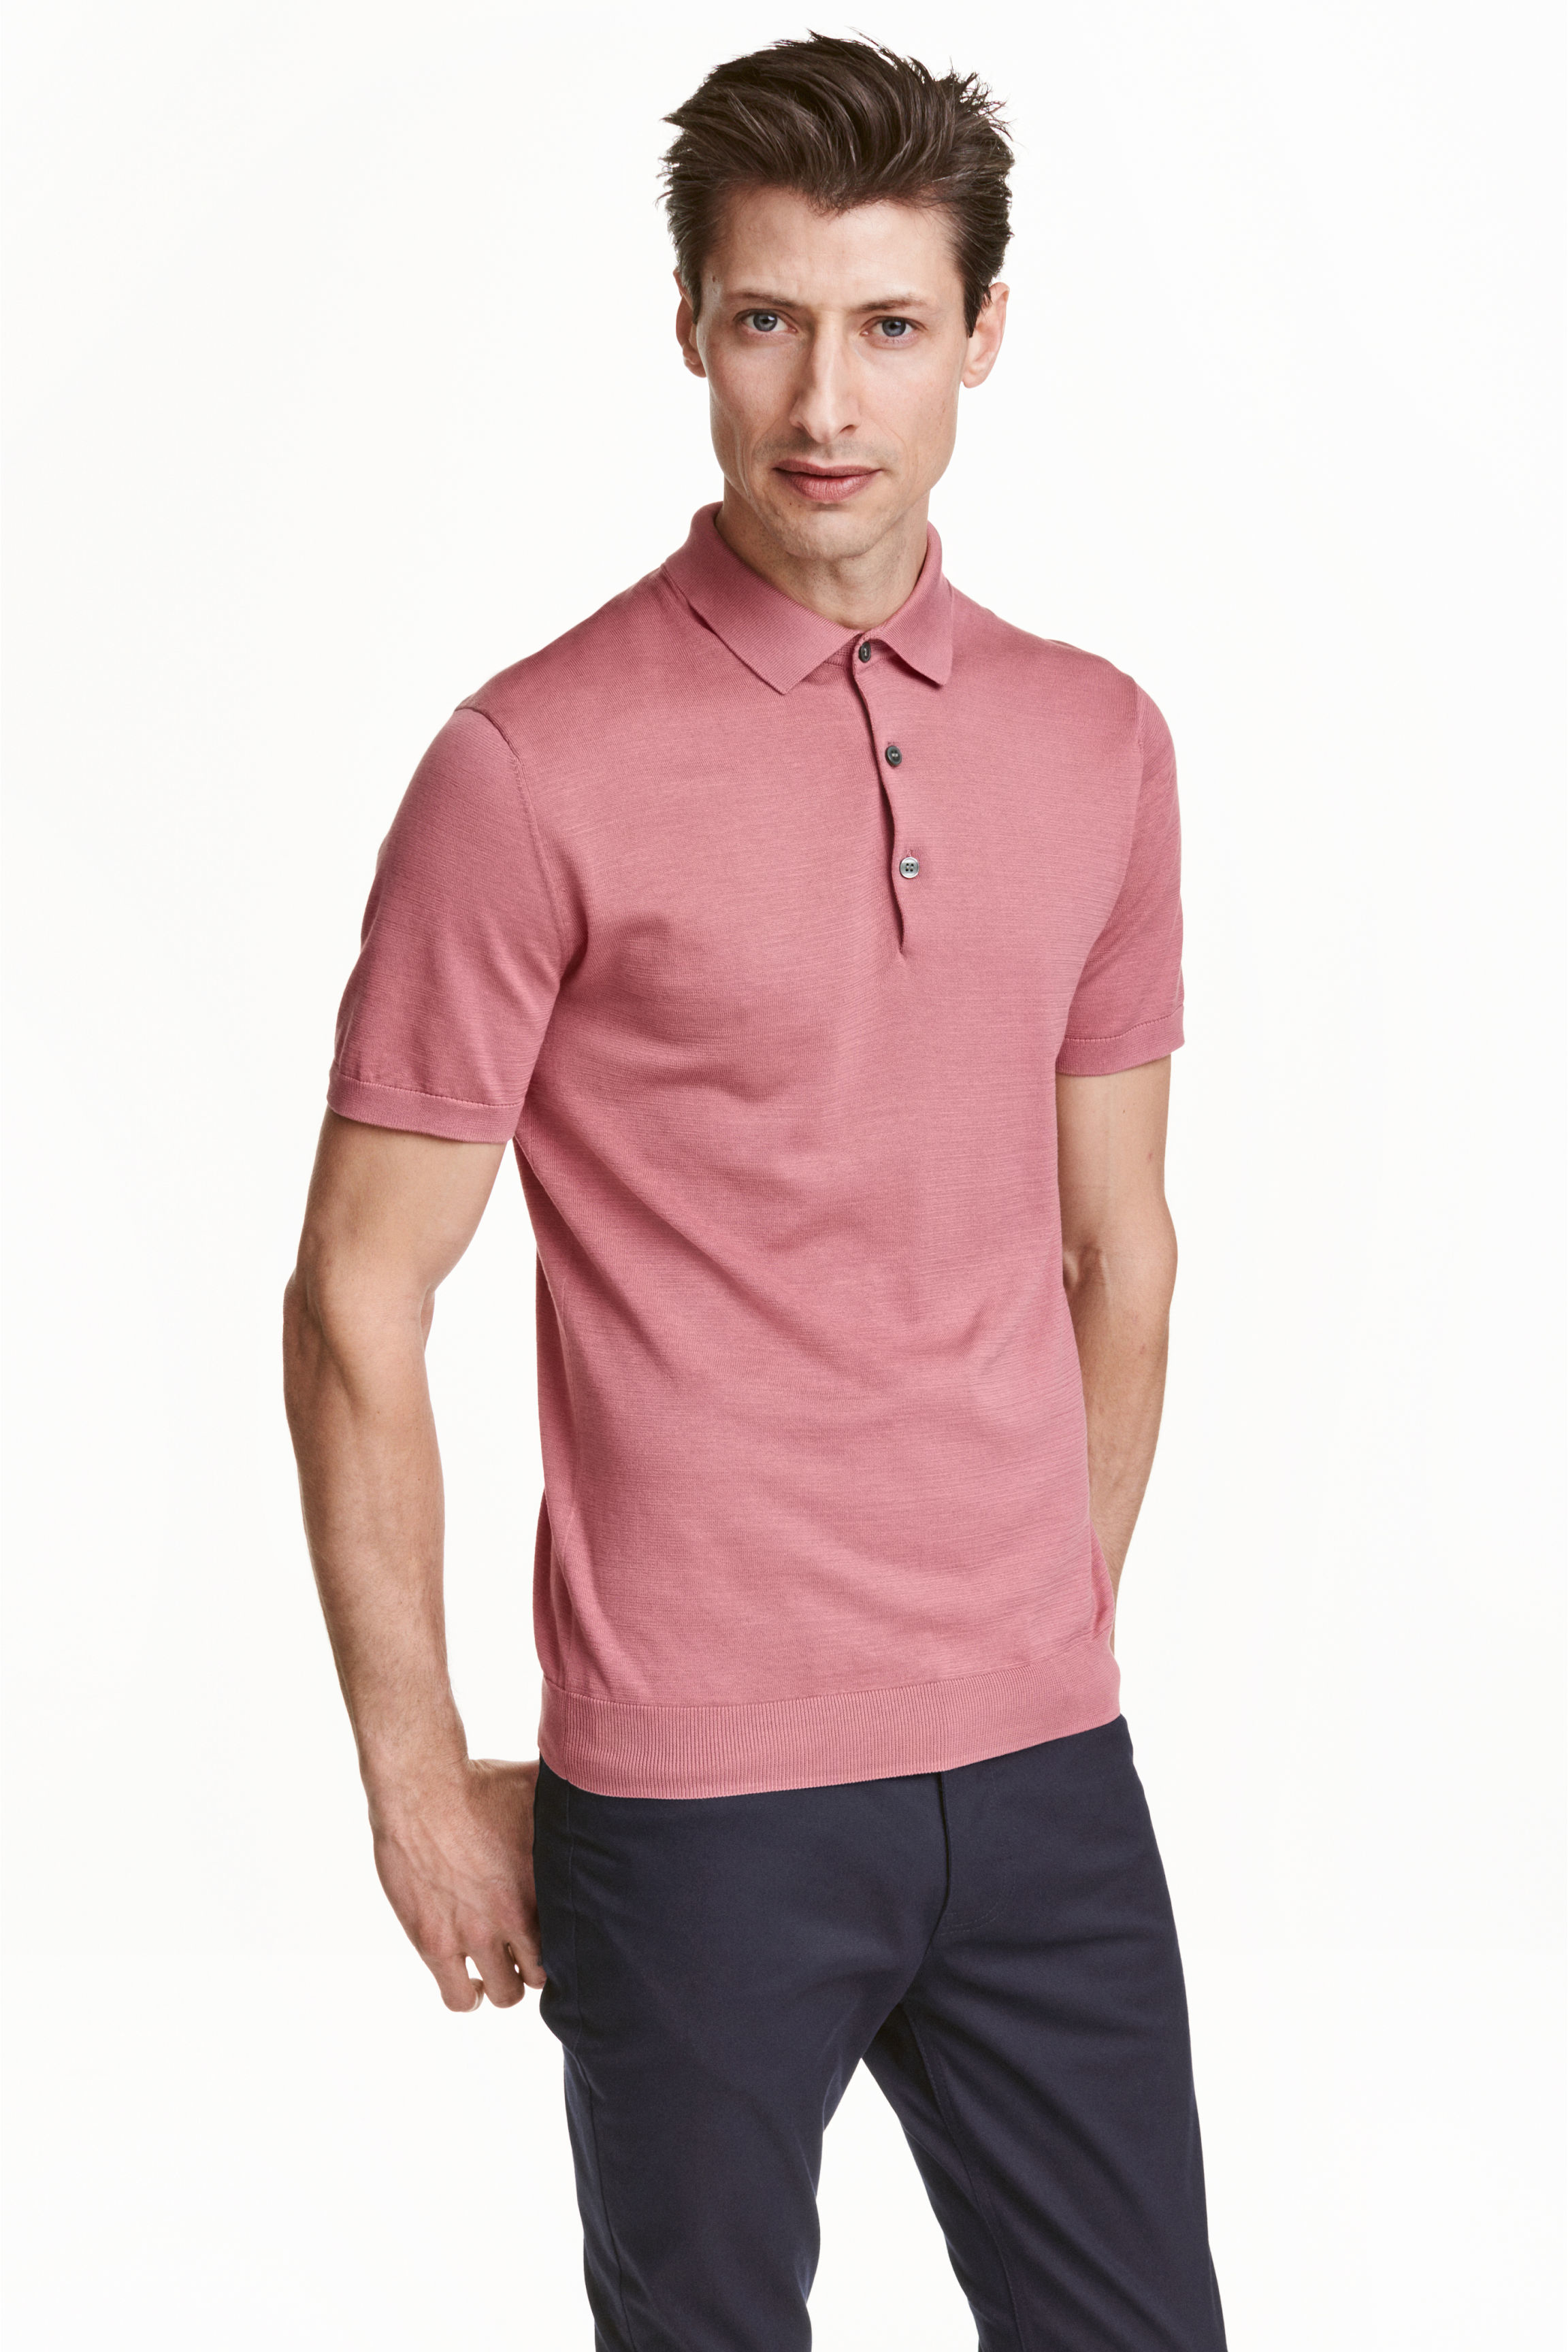 H m silk blend polo shirt in pink for men lyst for H m polo shirt mens